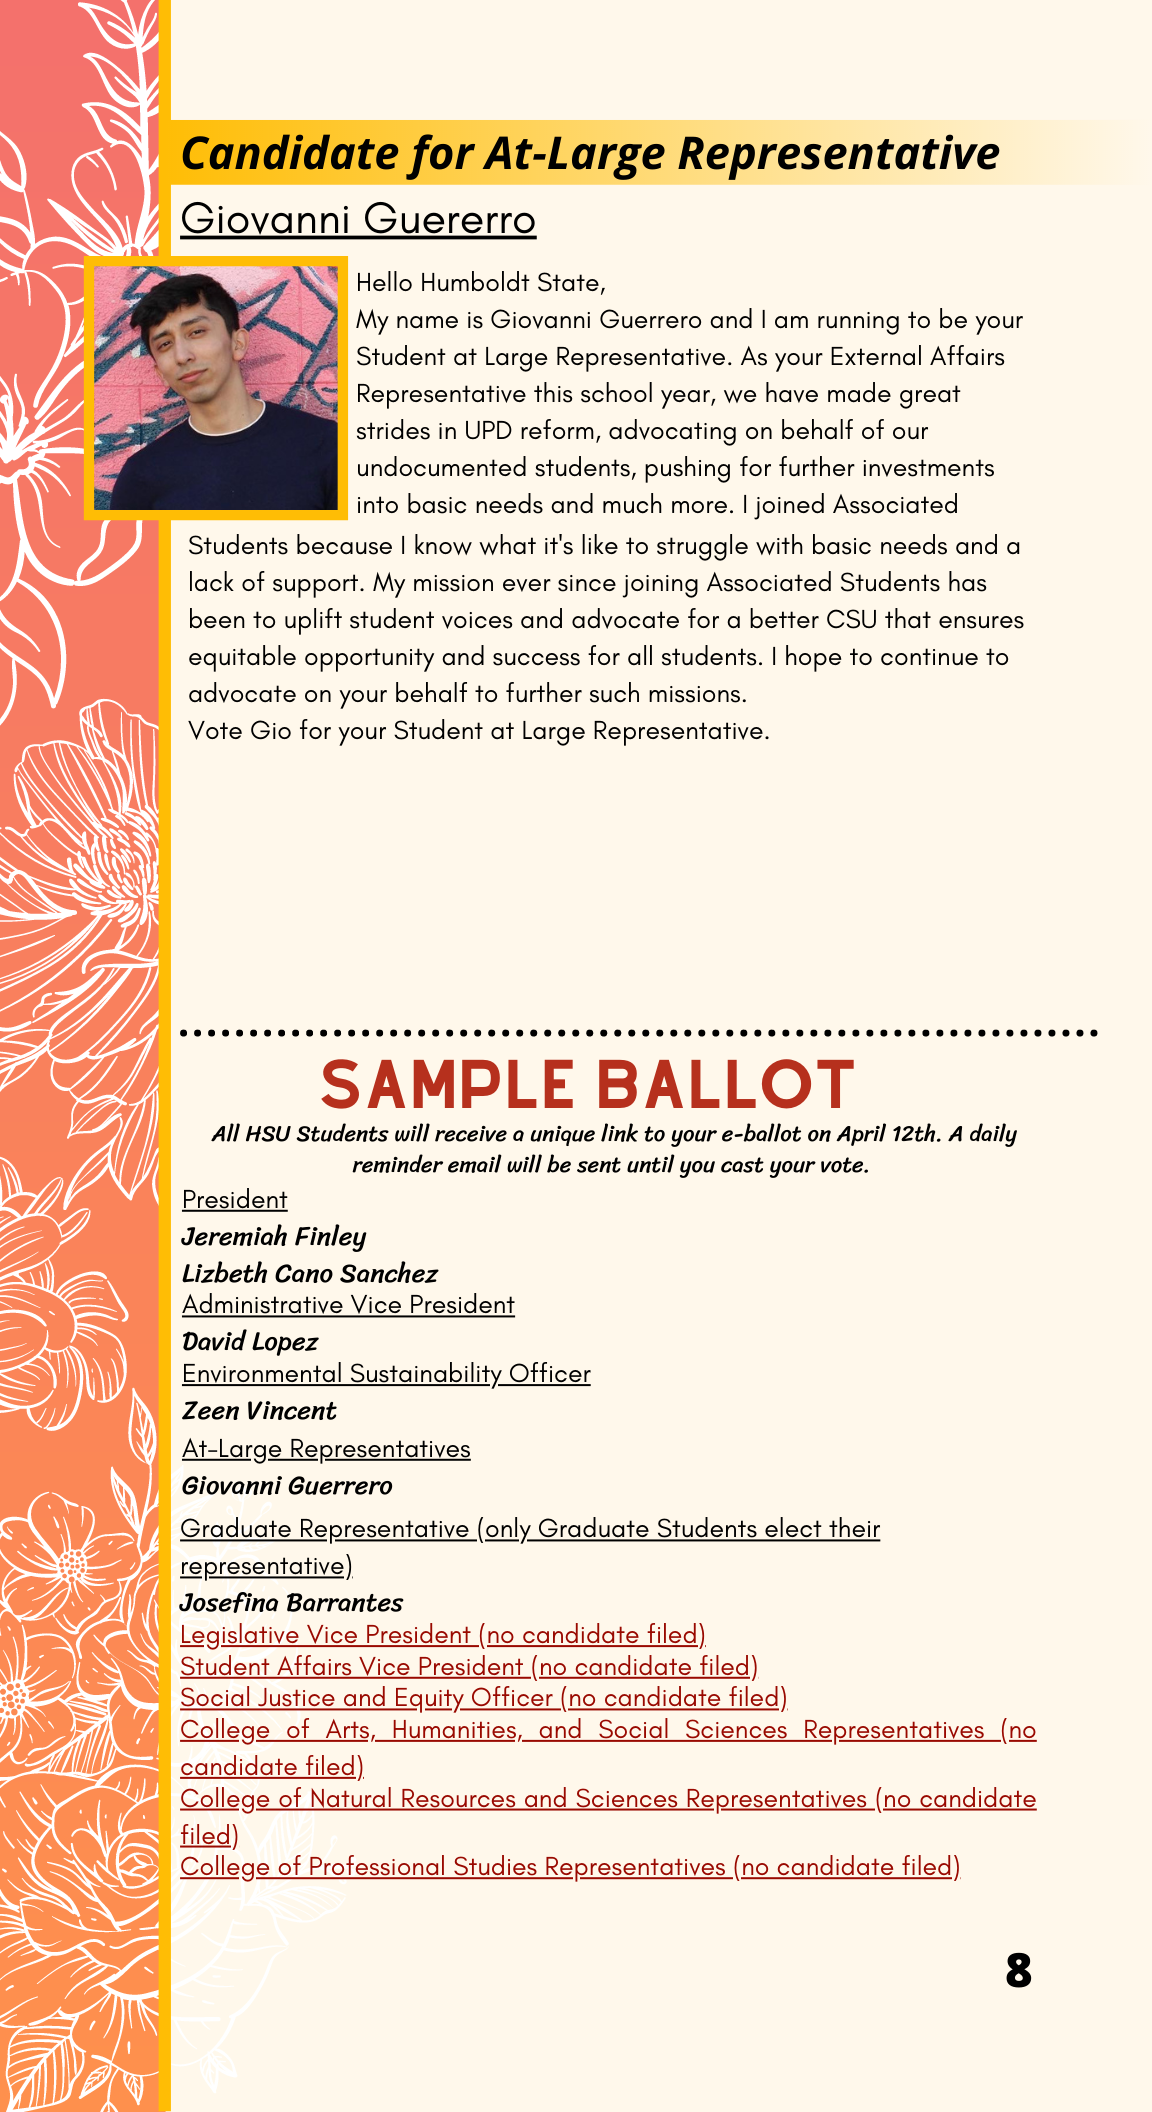 2021 Voter's Guide-page 8